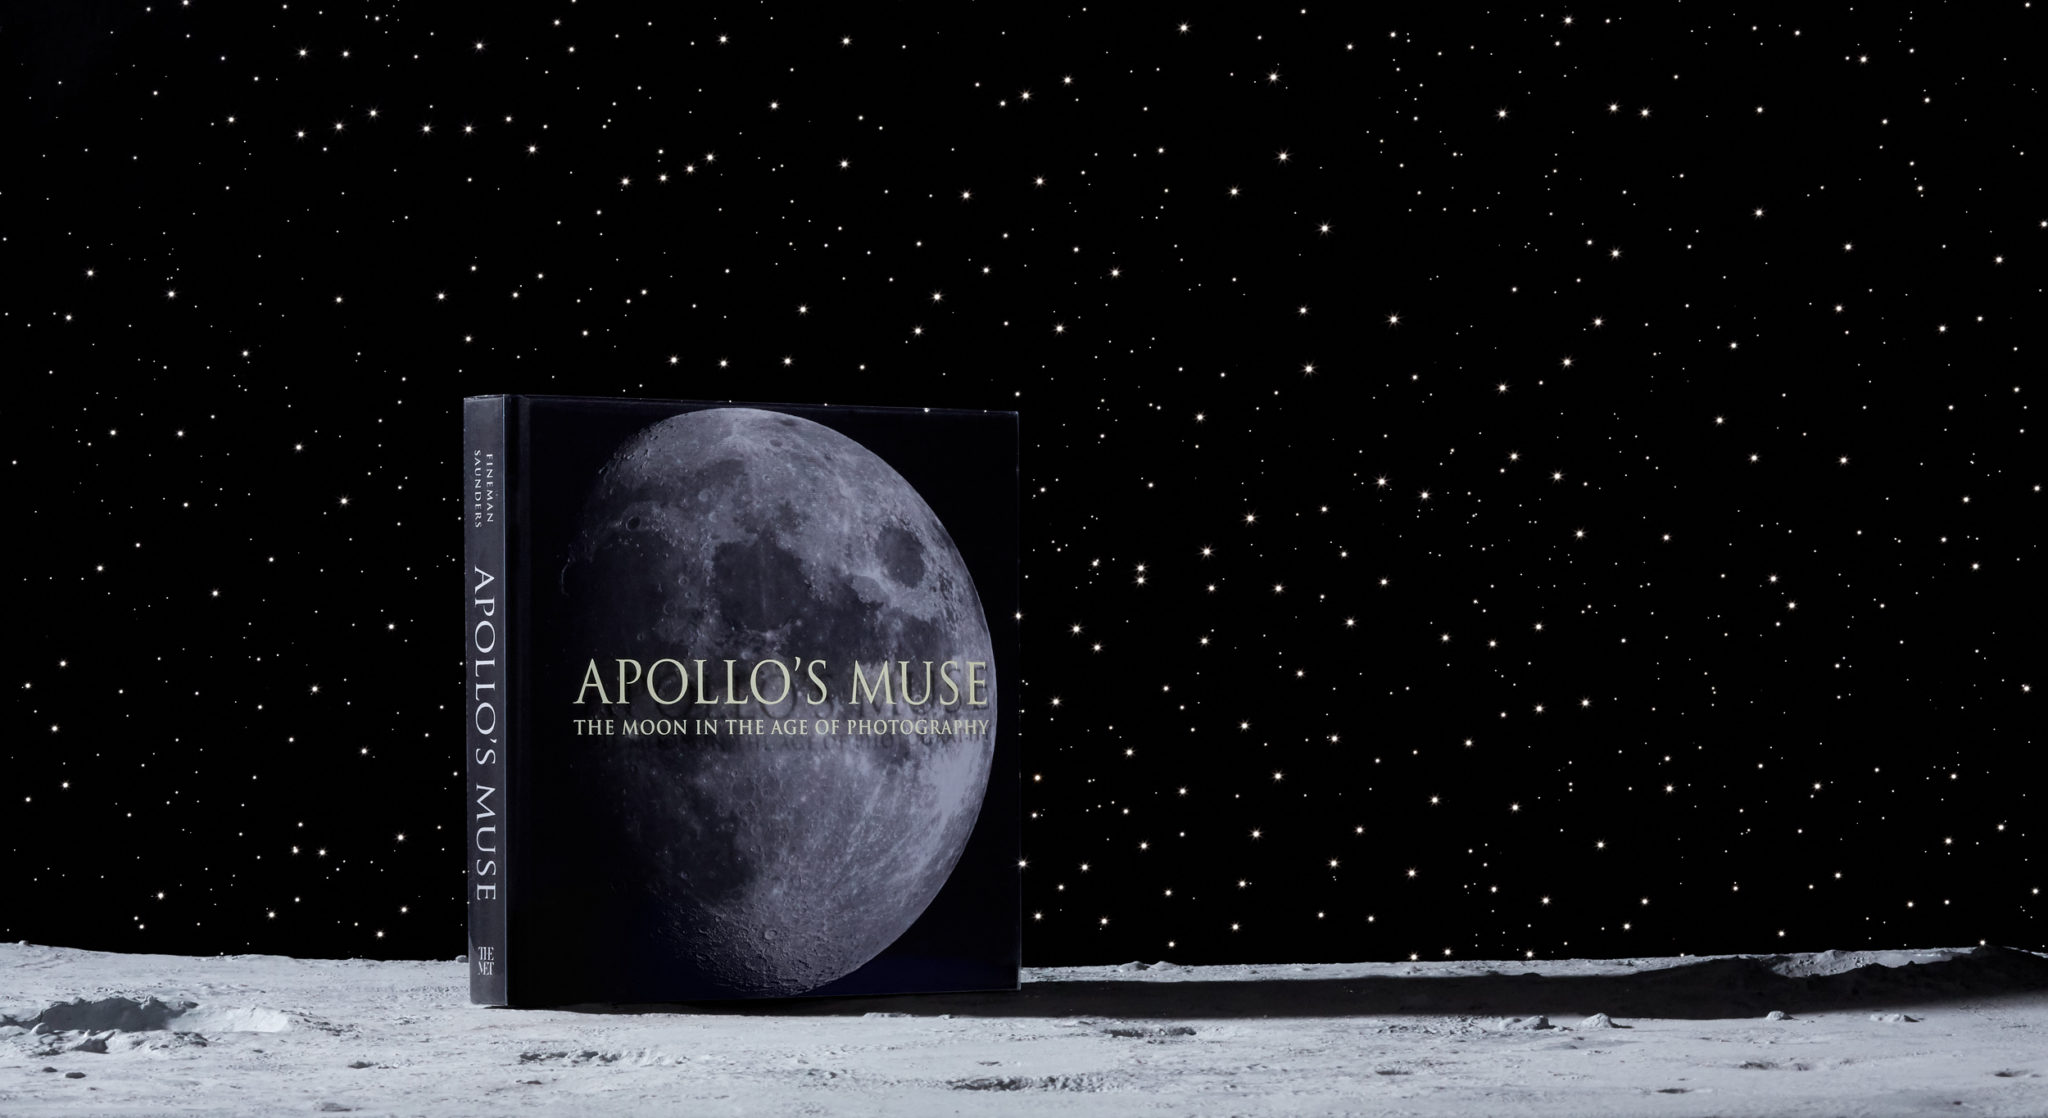 marketing still life photograph of the Apollo's Muse exhibition catalog book on the moon with a star-field background